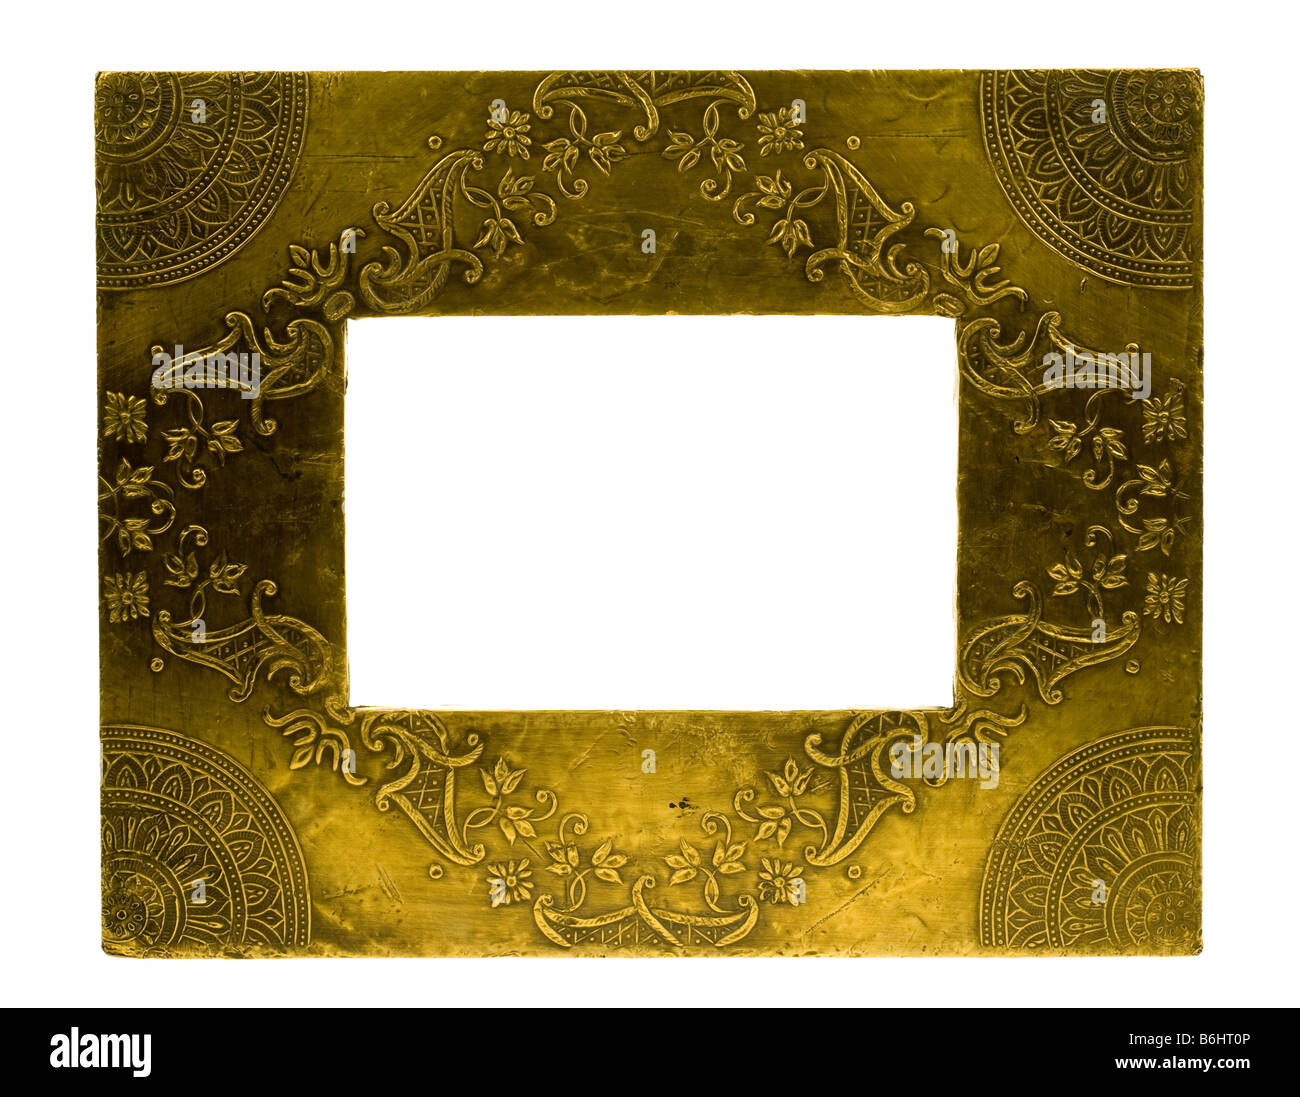 metal photo frame isolated on a white background - Stock Image